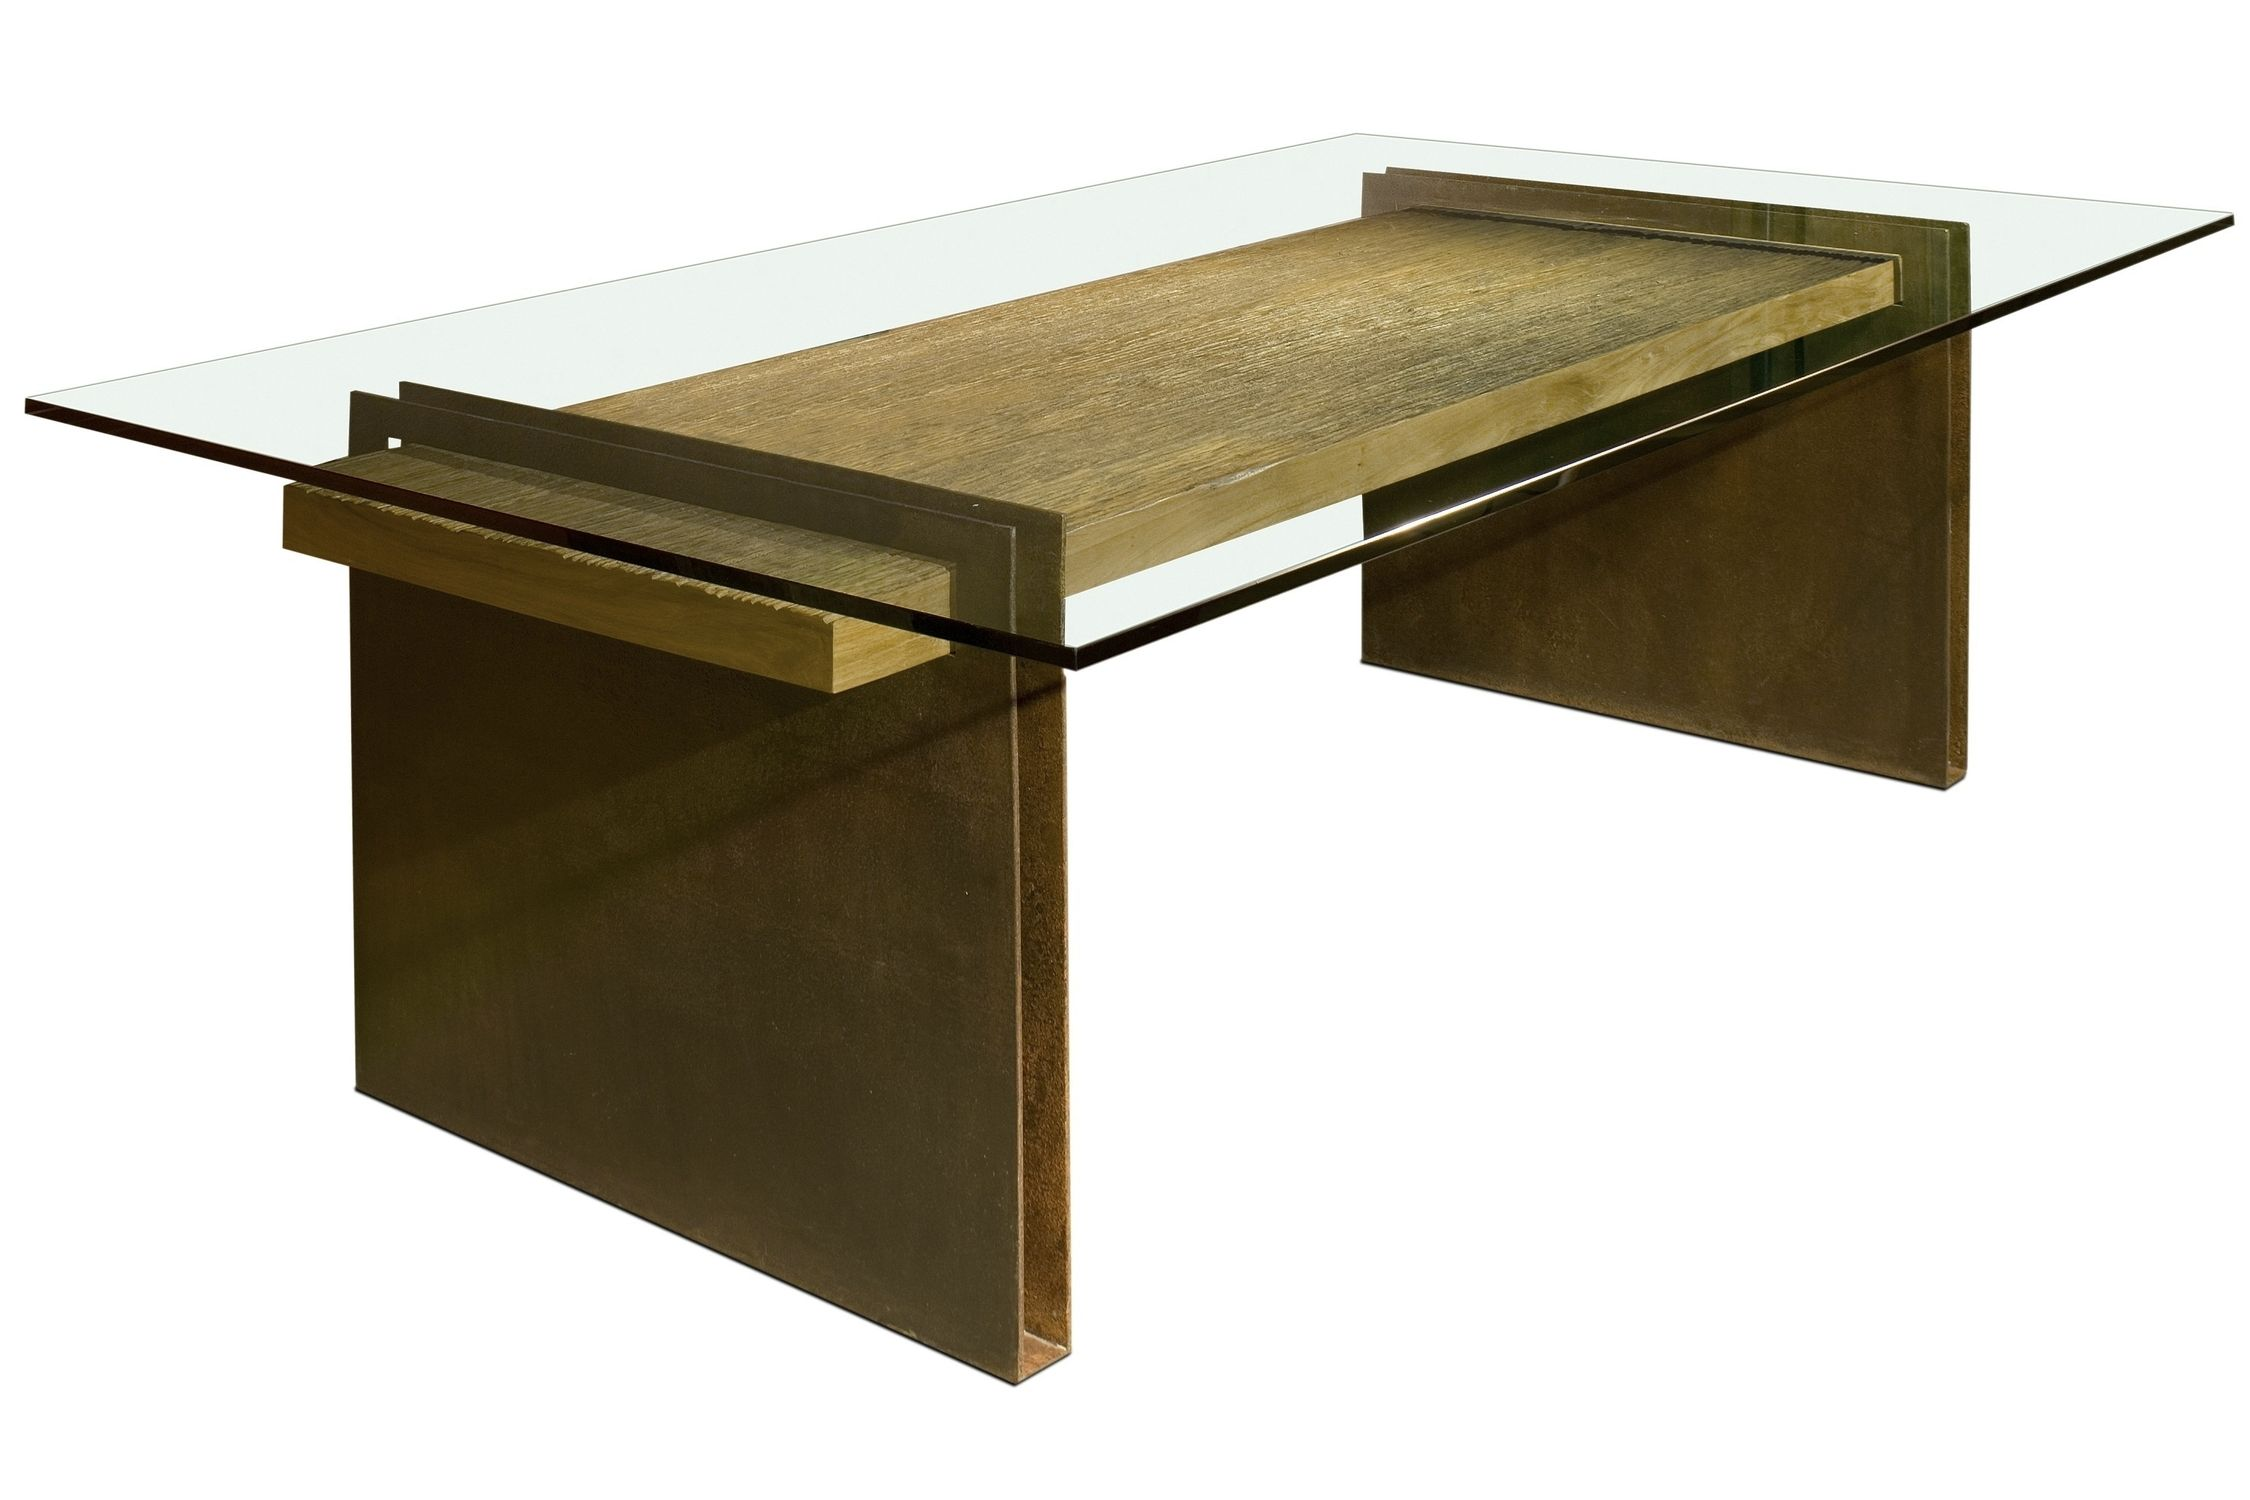 Contemporary Table / Wooden / Rectangular / In Reclaimed Material   CHAPA METAL  BASE